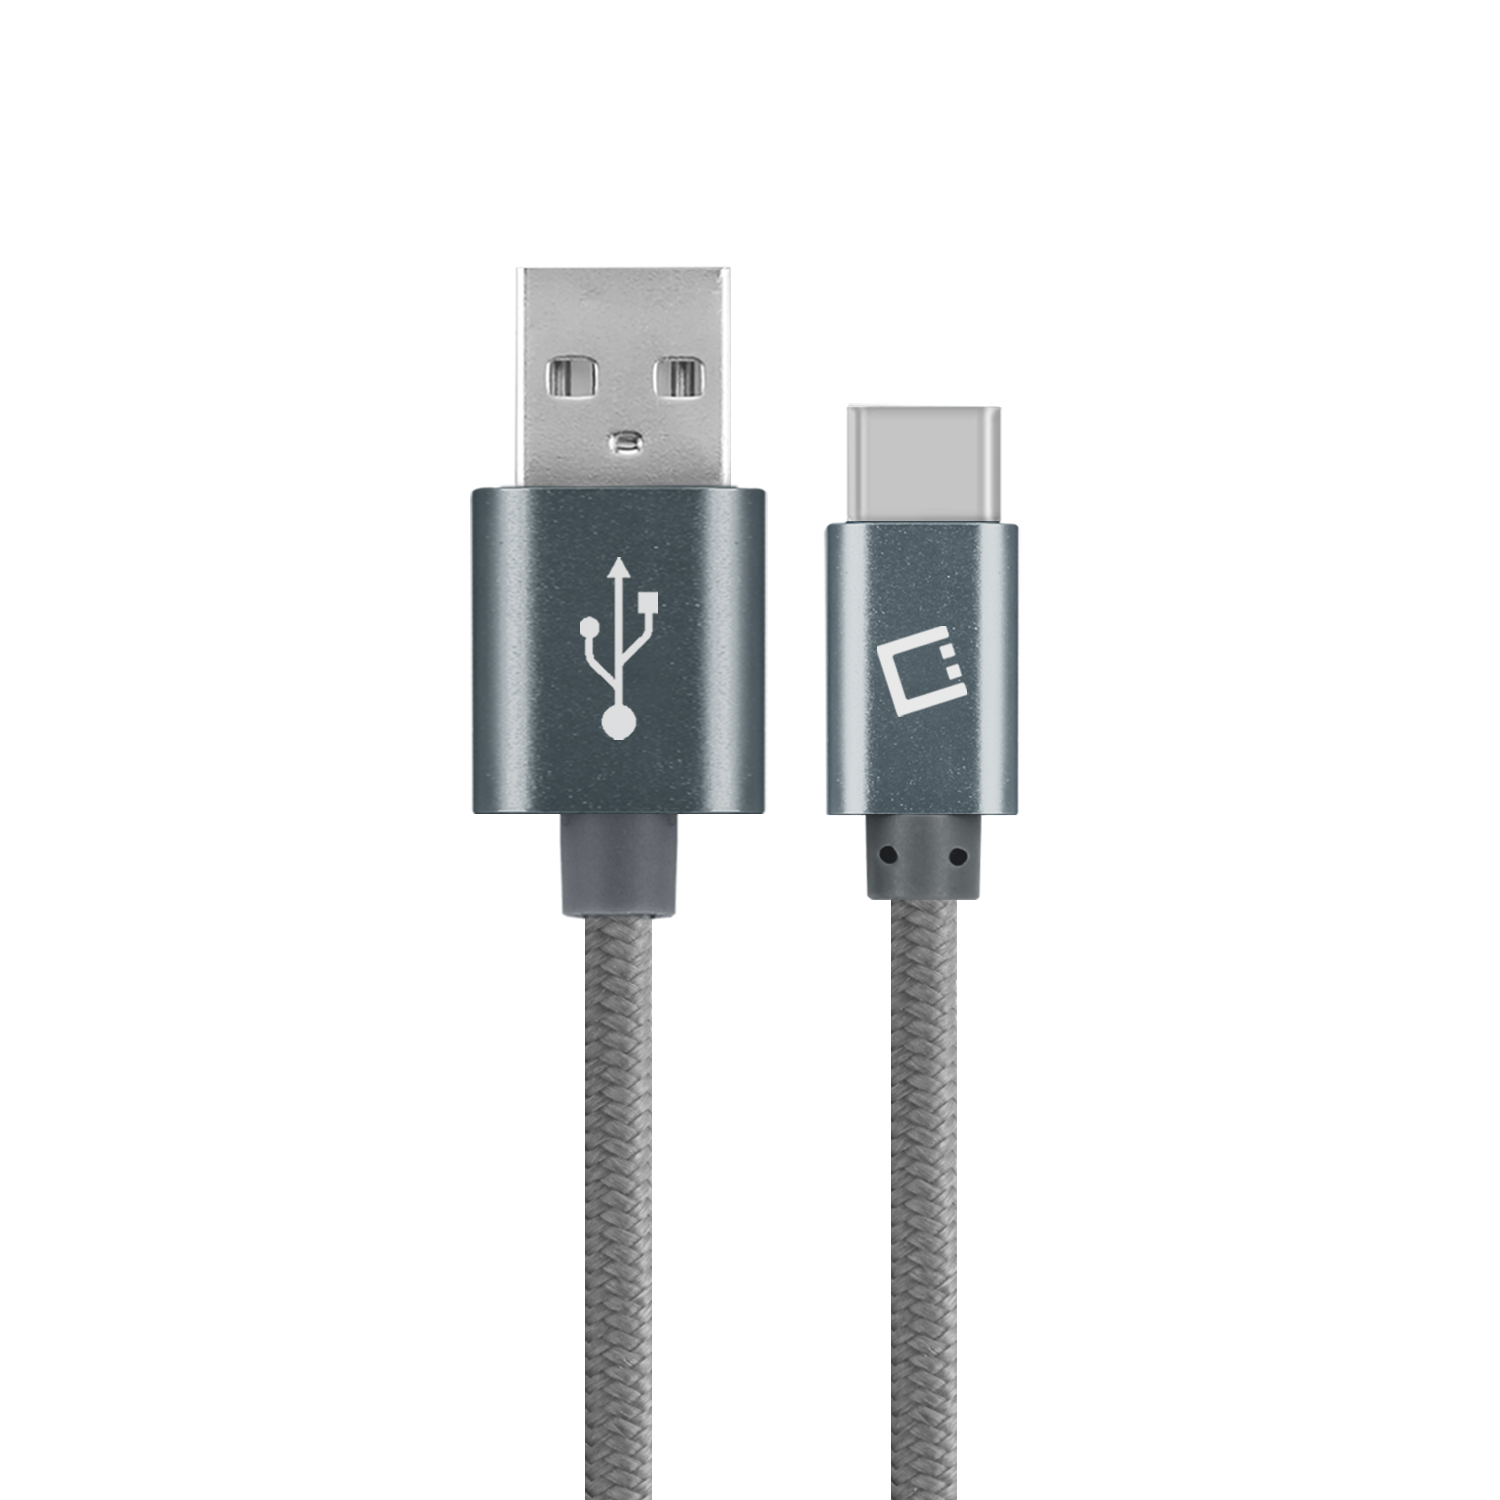 Samsung Galaxy A10e USB Type-C To Type-A Braided Data Power Cable Grey 10ft Braided